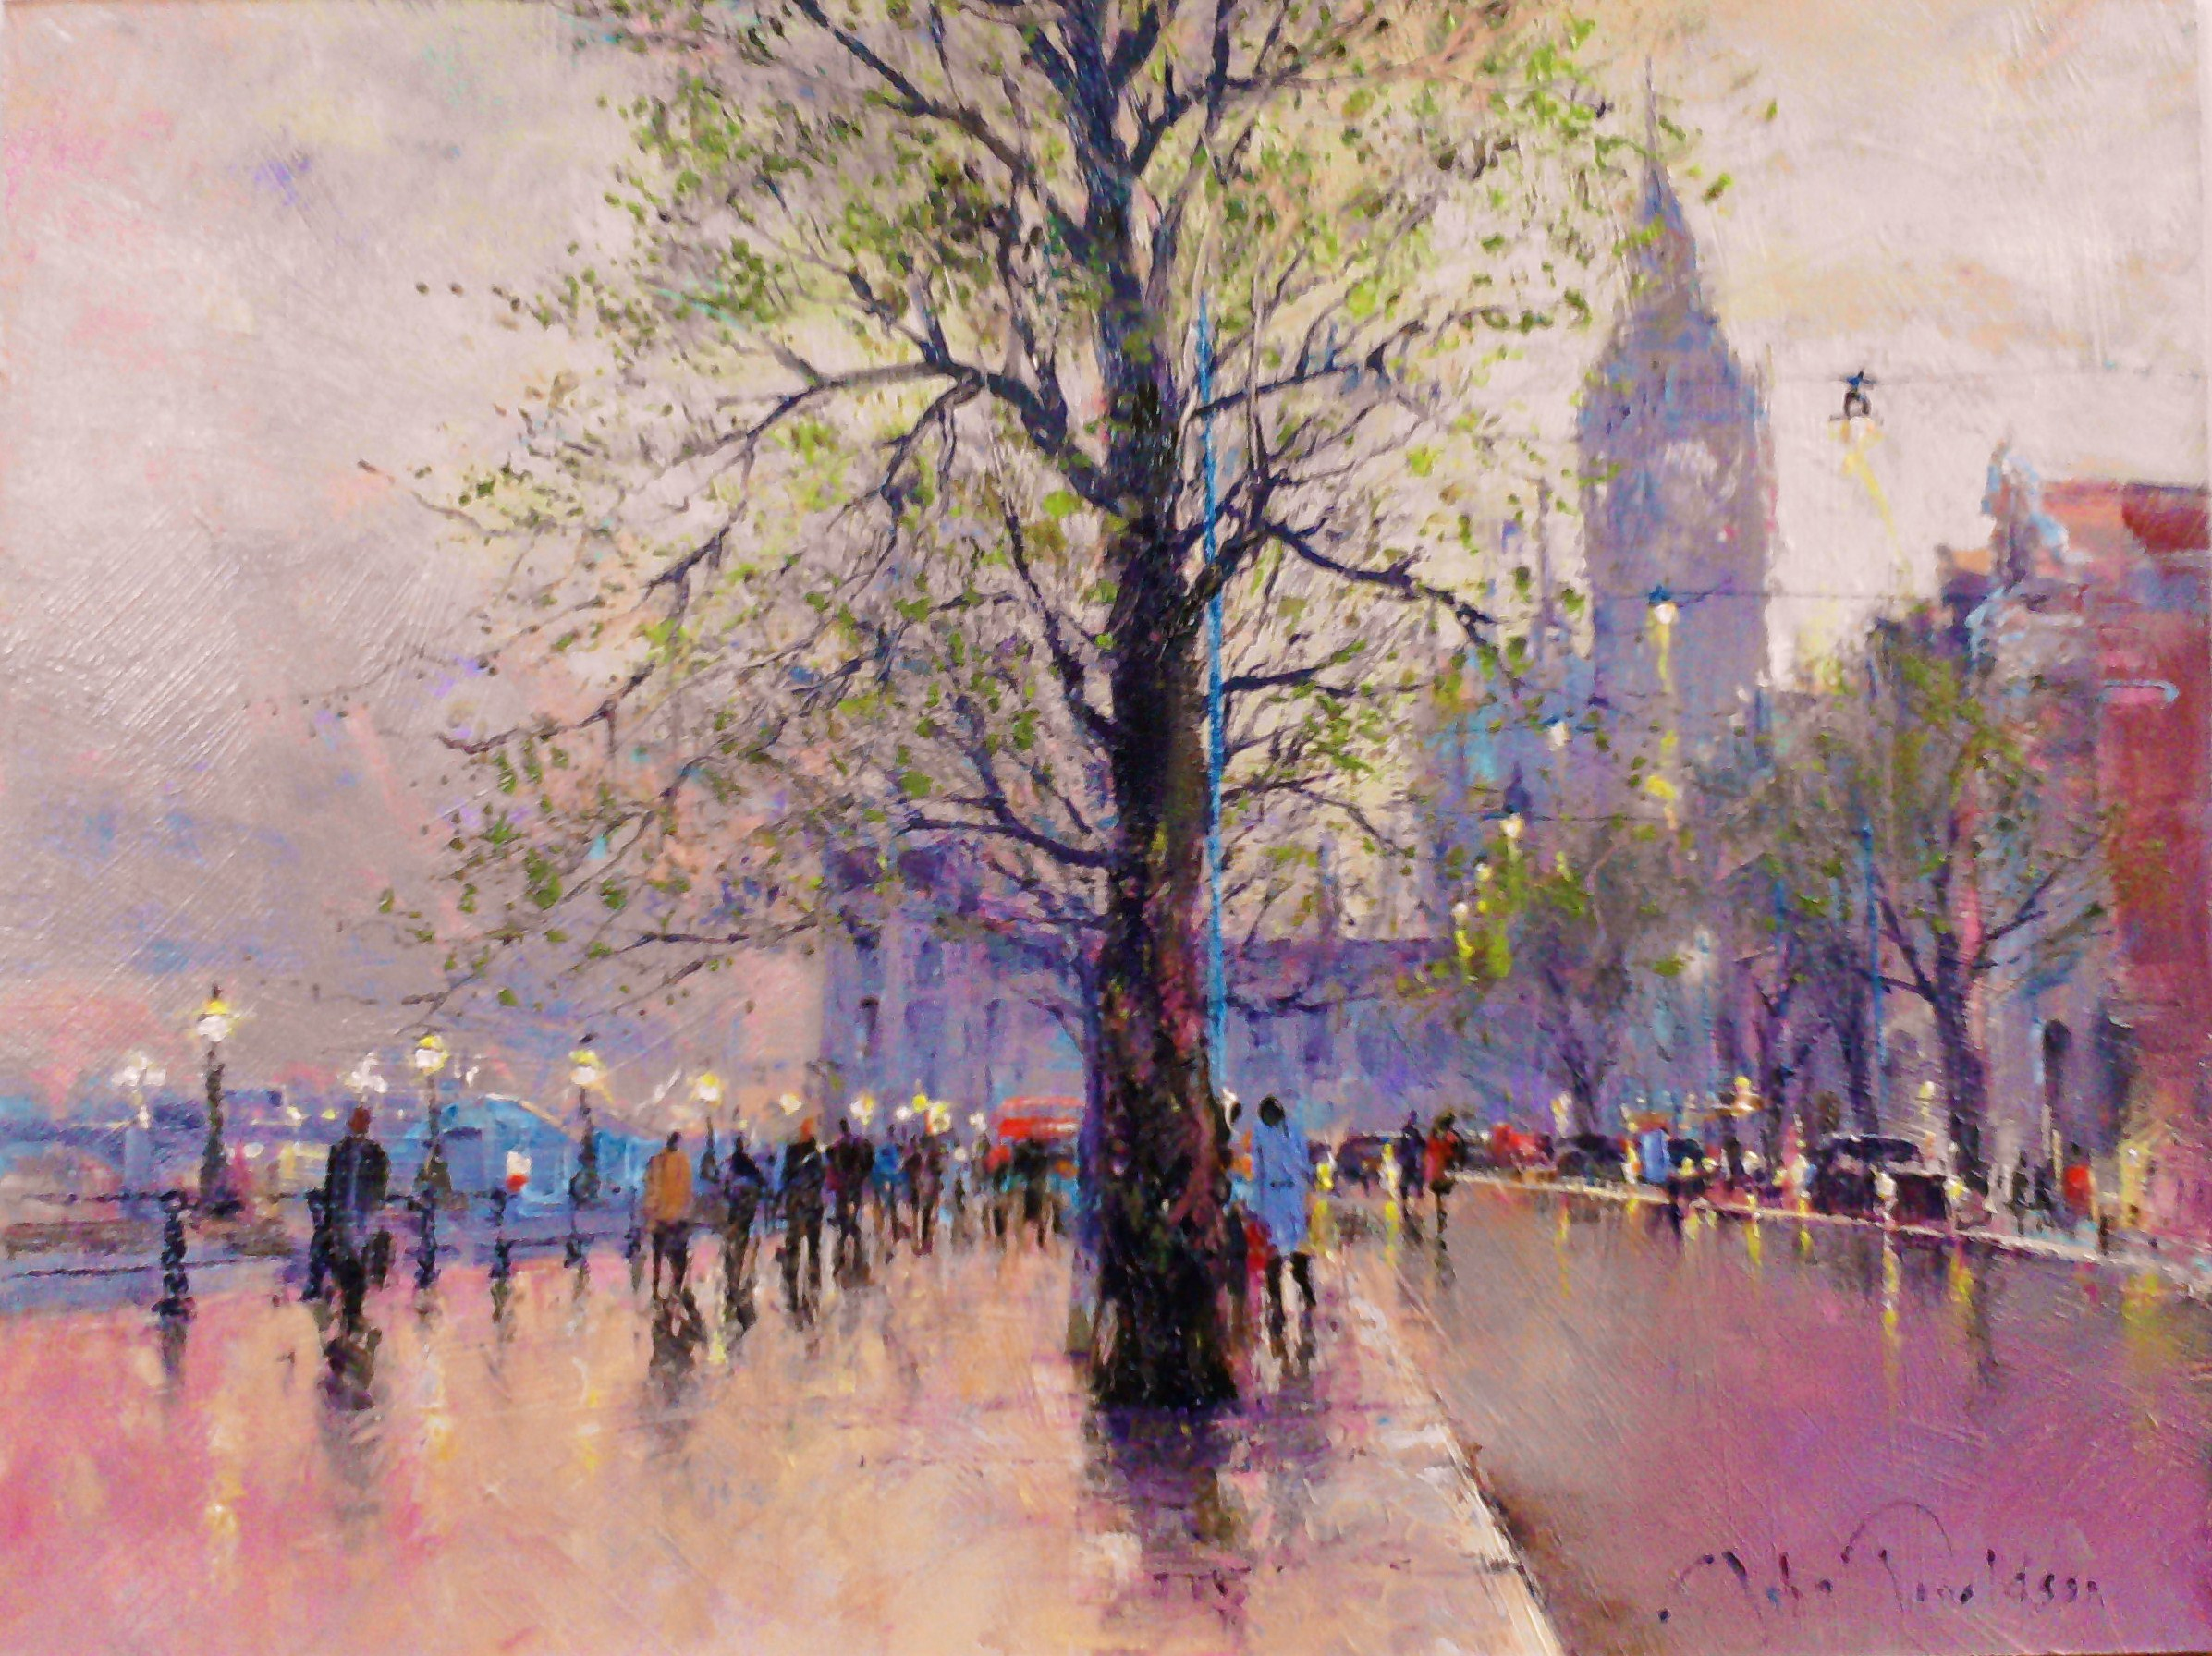 The Victoria Embankment study